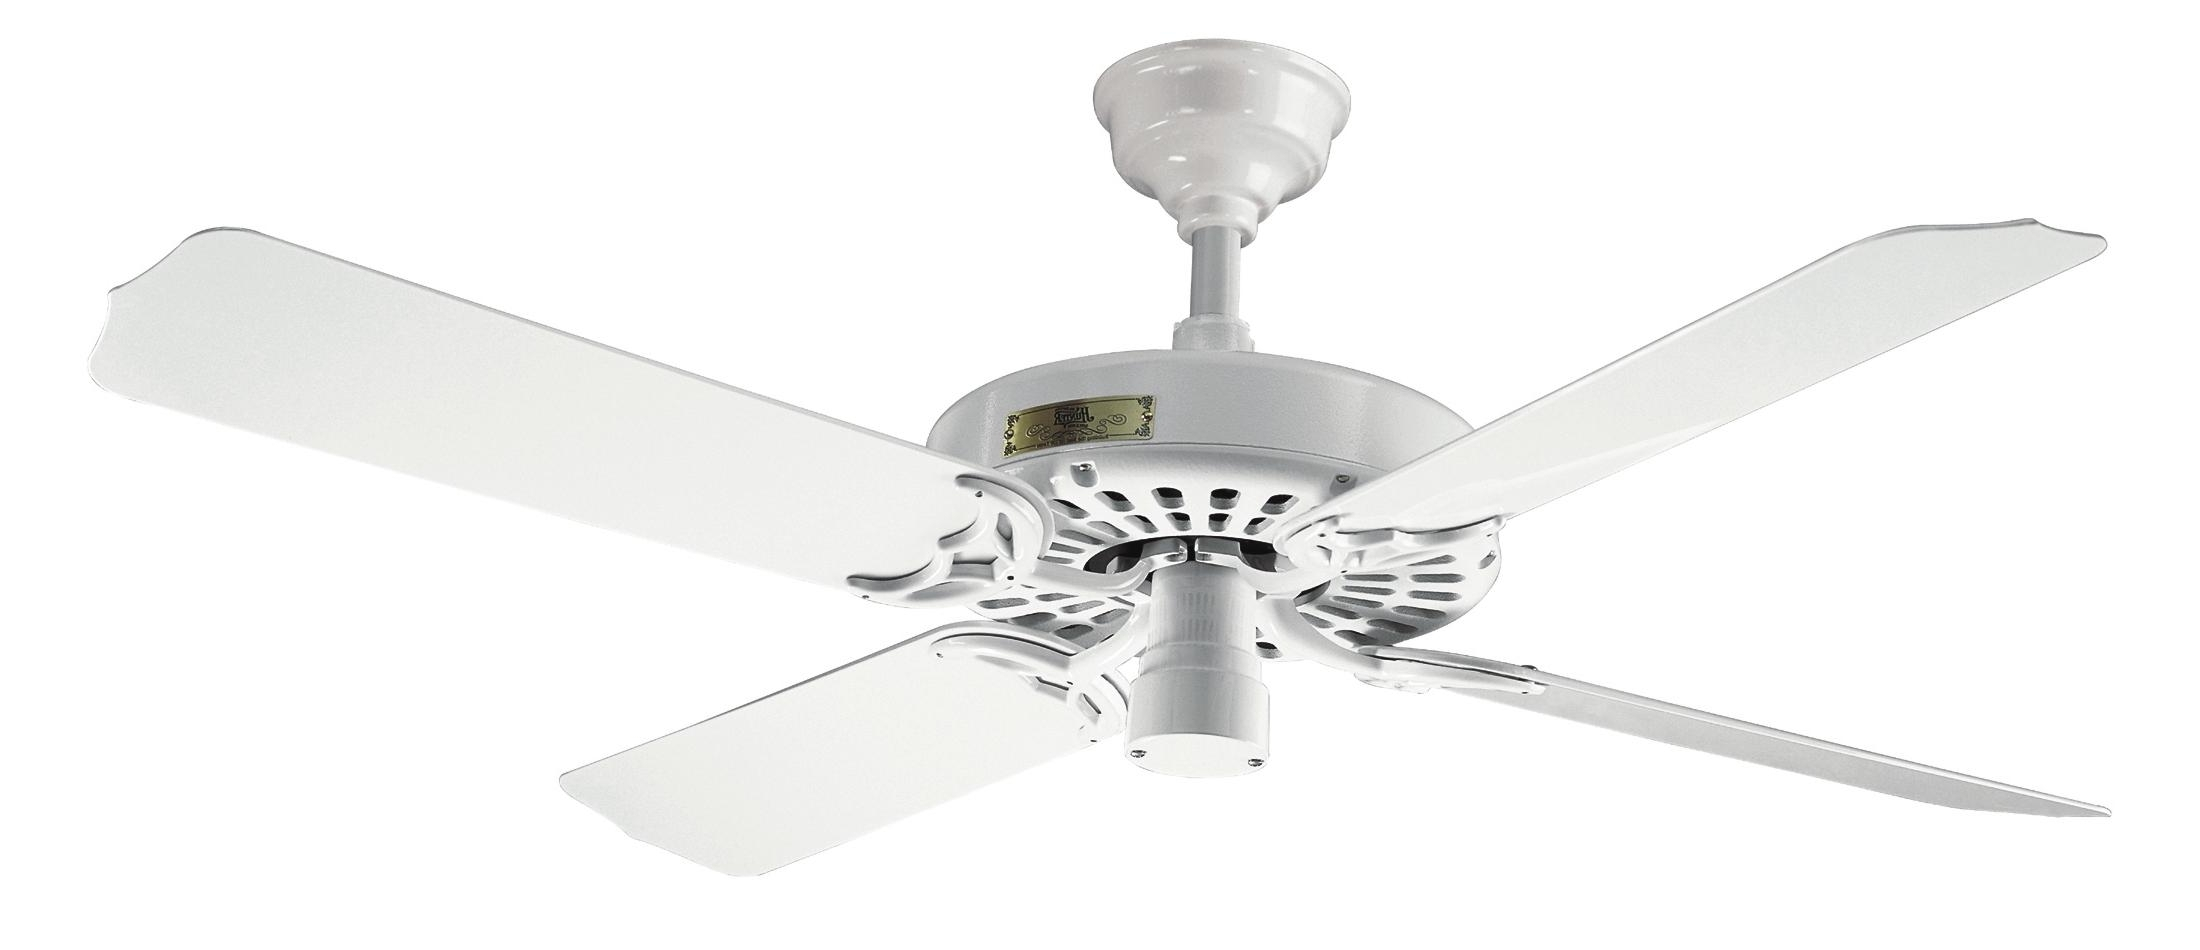 Popular Hunter Outdoor Original White Ceiling Fan 25602 In White, Best In White Outdoor Ceiling Fans With Lights (Gallery 18 of 20)